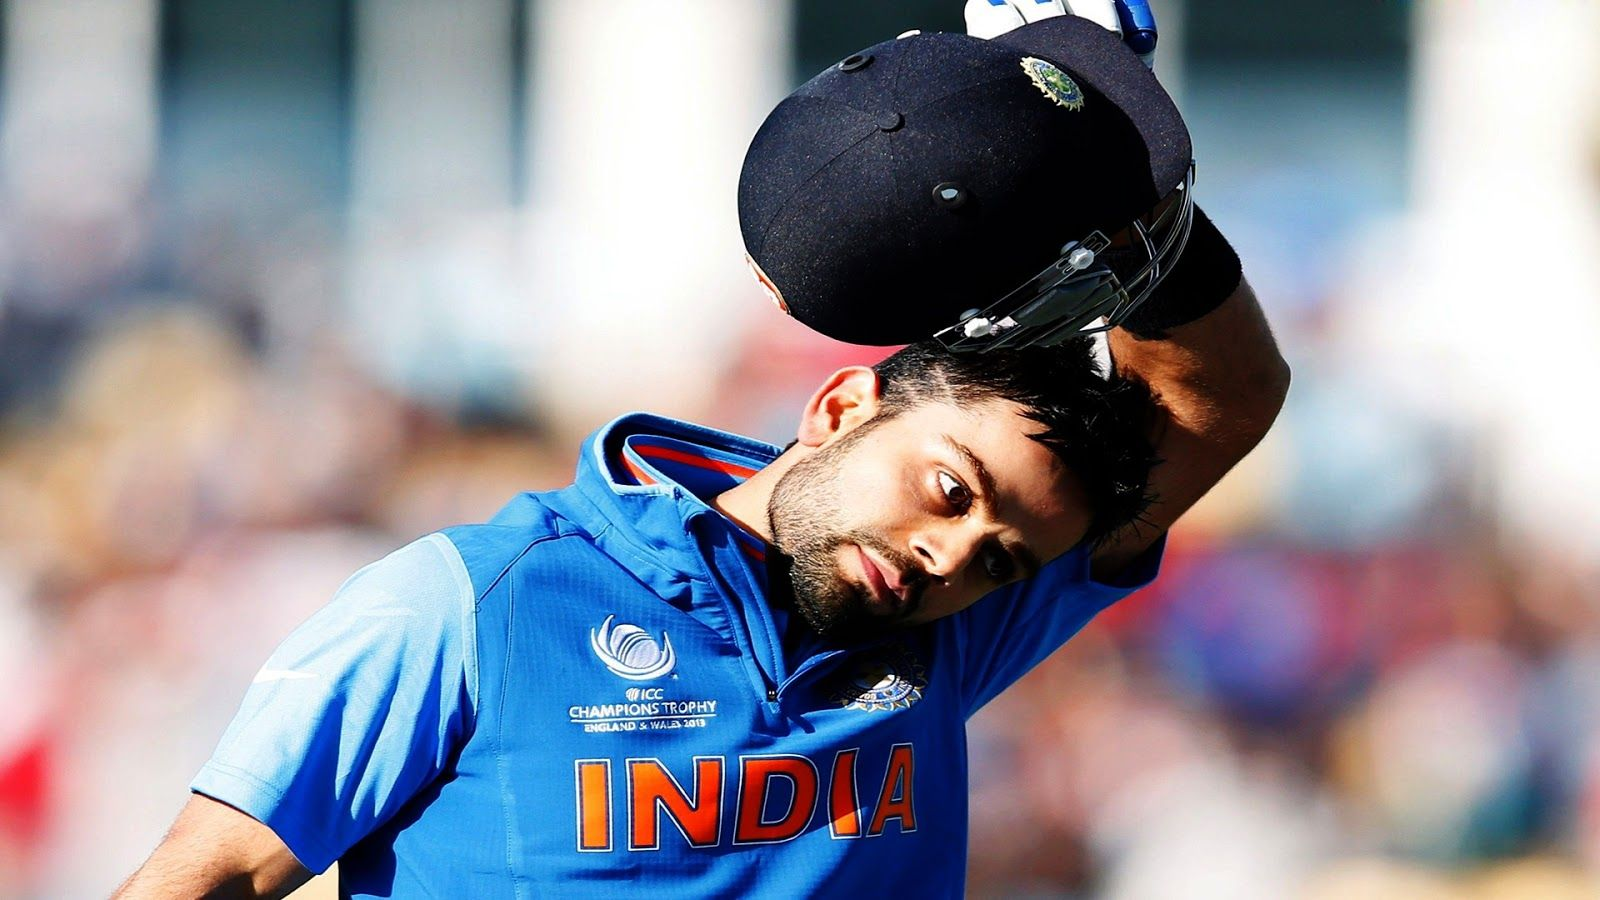 Virat Kohli Wallpapers Hd Download Free 1080p Virat Kohli Virat